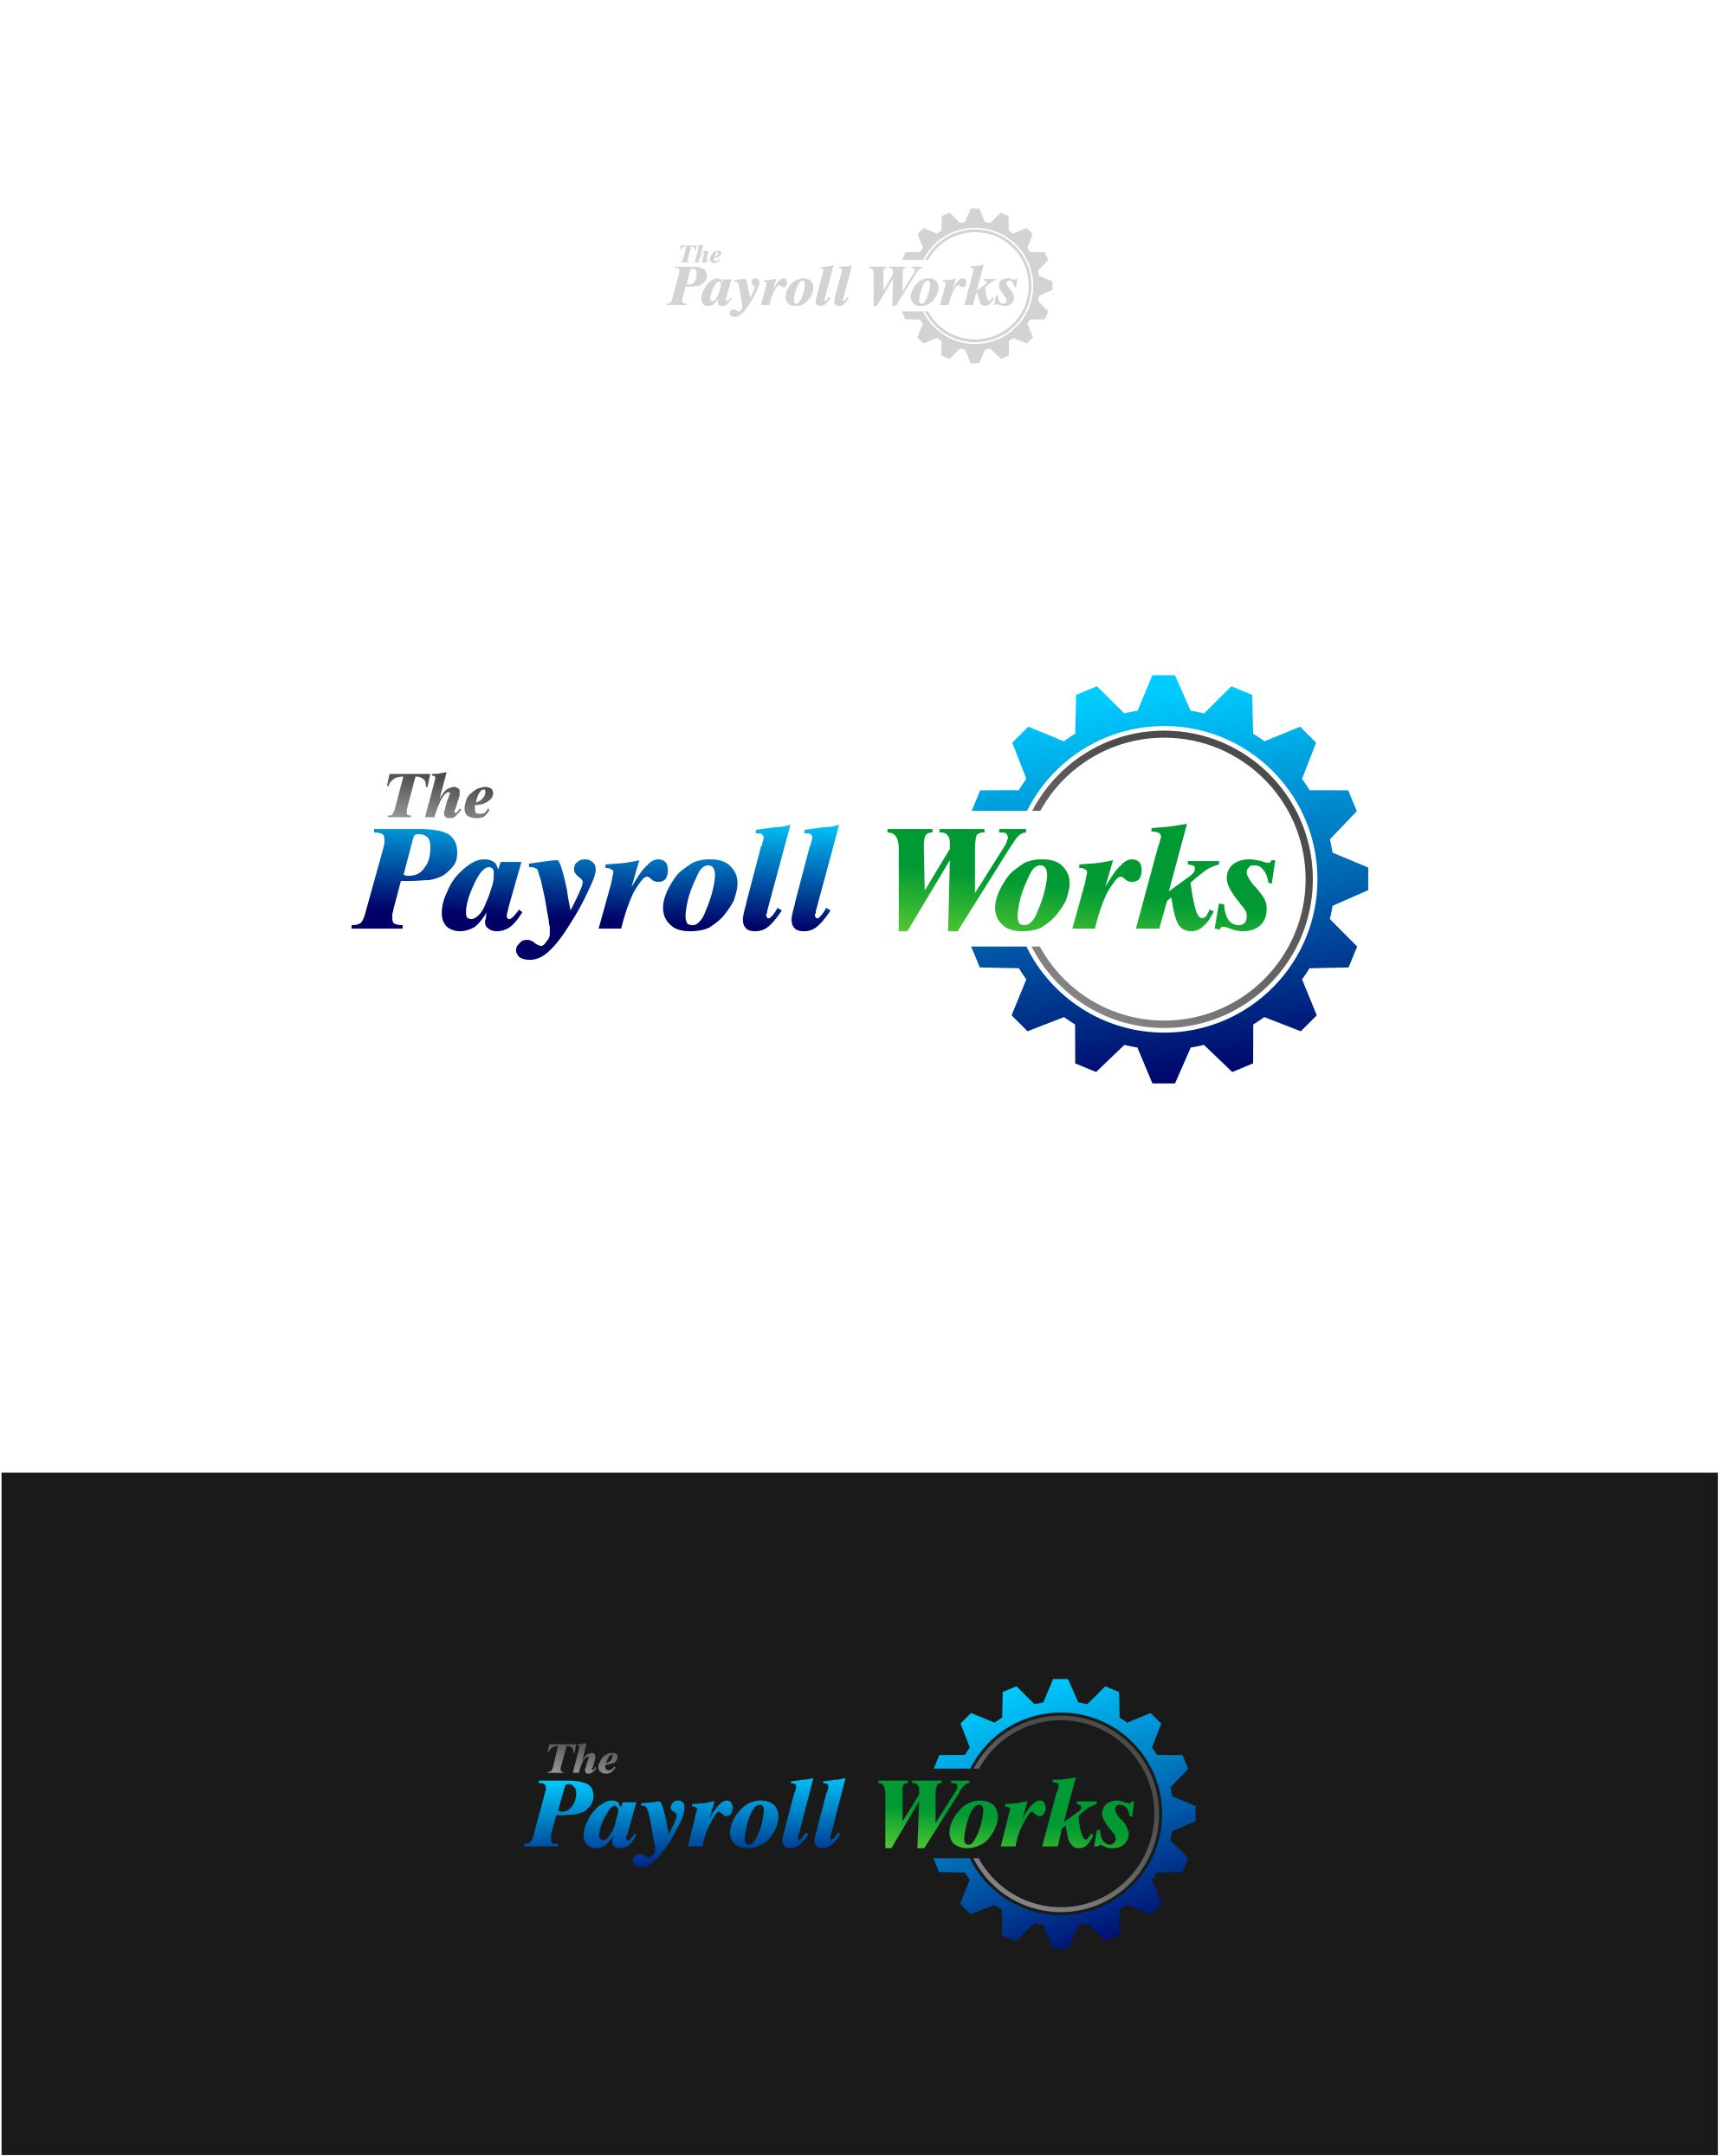 Logo Design by Raymond Garcia - Entry No. 23 in the Logo Design Contest Captivating Logo Design for The Payroll Works.